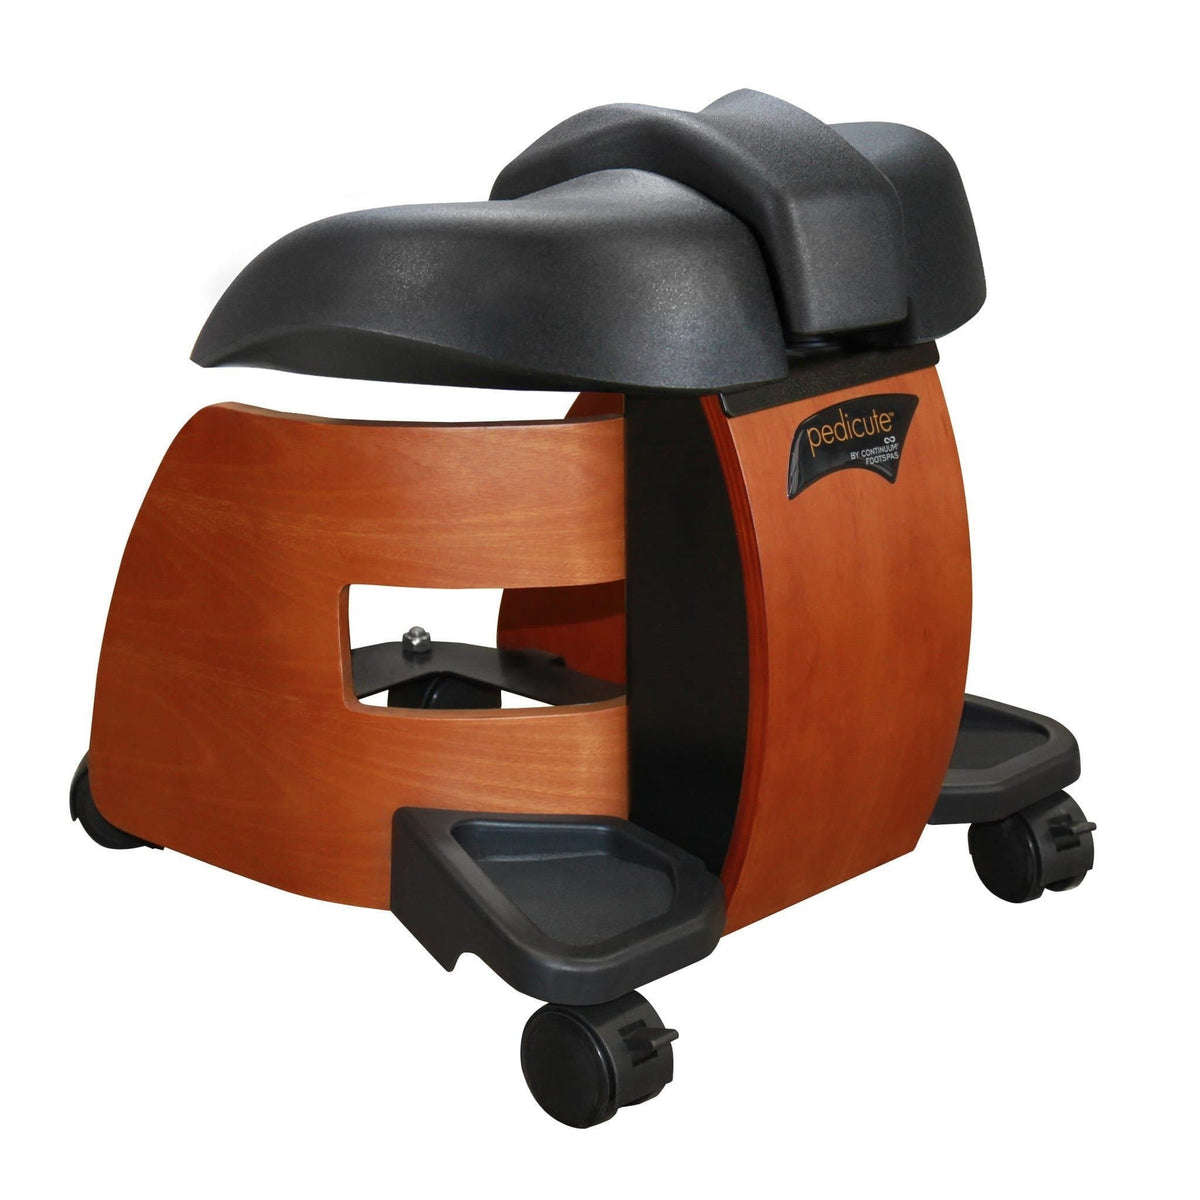 Continuum Continuum Pedicute Portable Spa Pedicure & Spa Chairs - ChairsThatGive